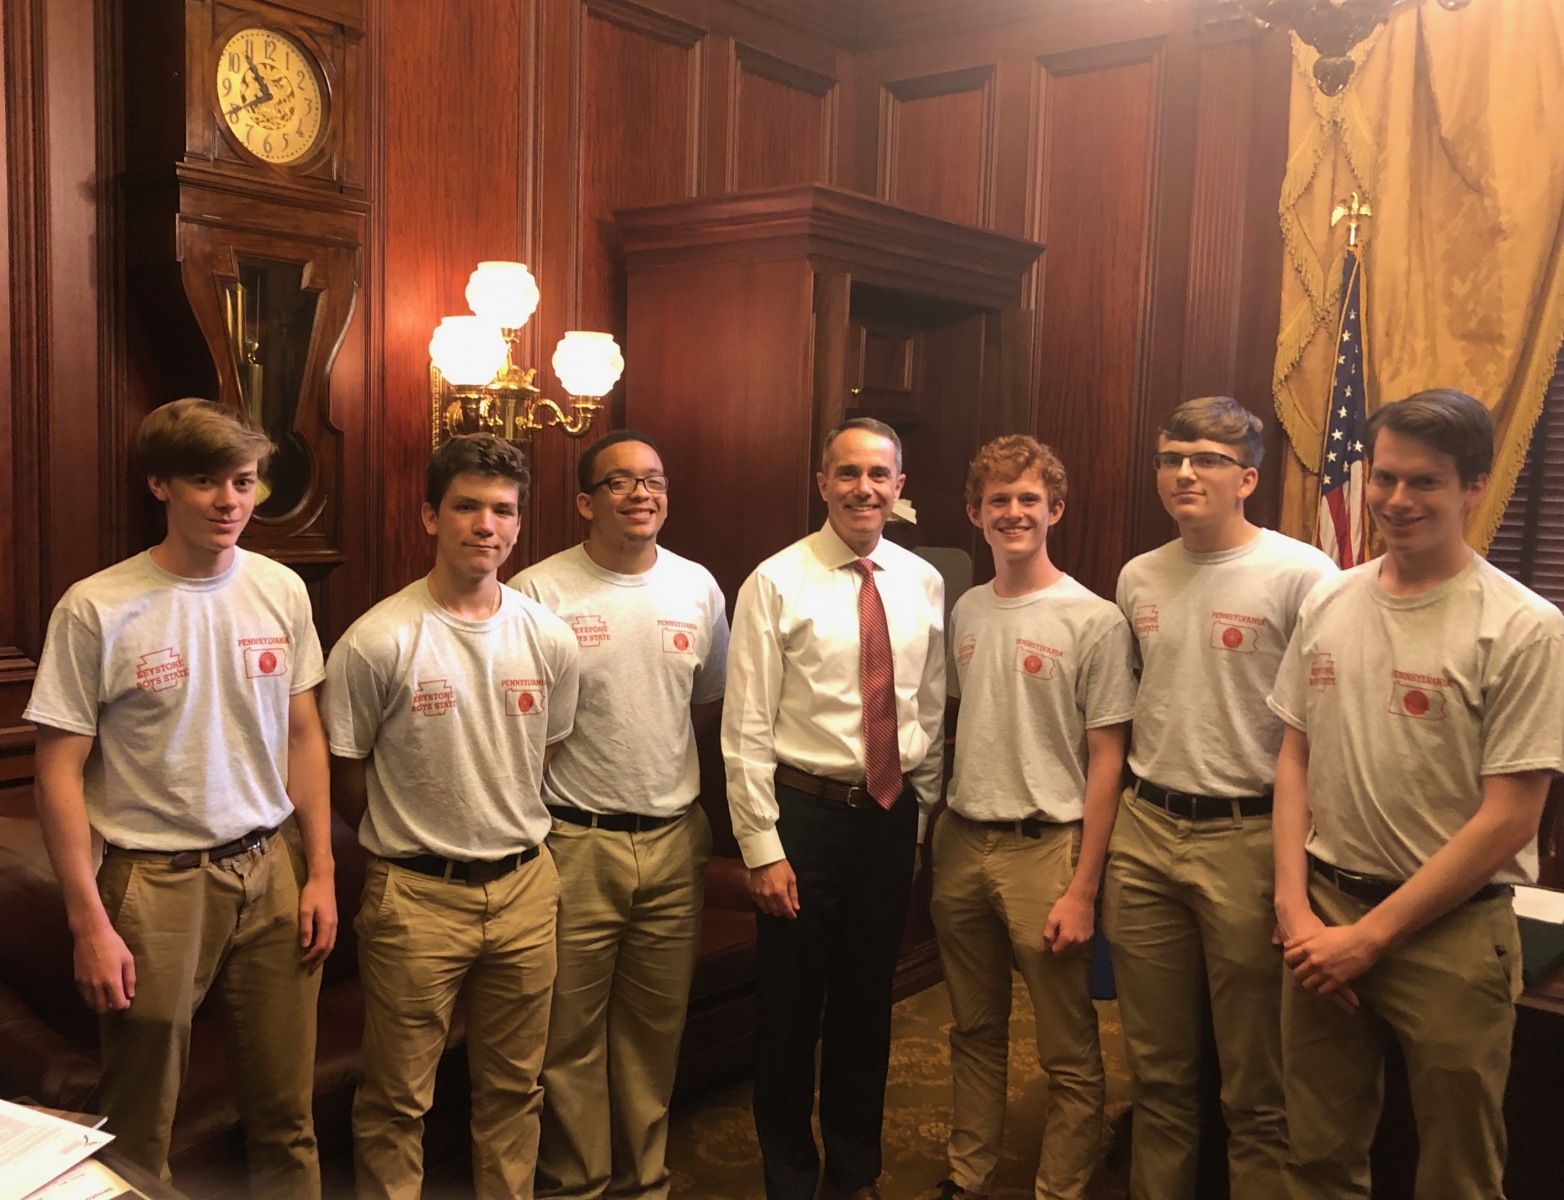 June 18, 2019: Steve meets with American Legion Boy's State Program.